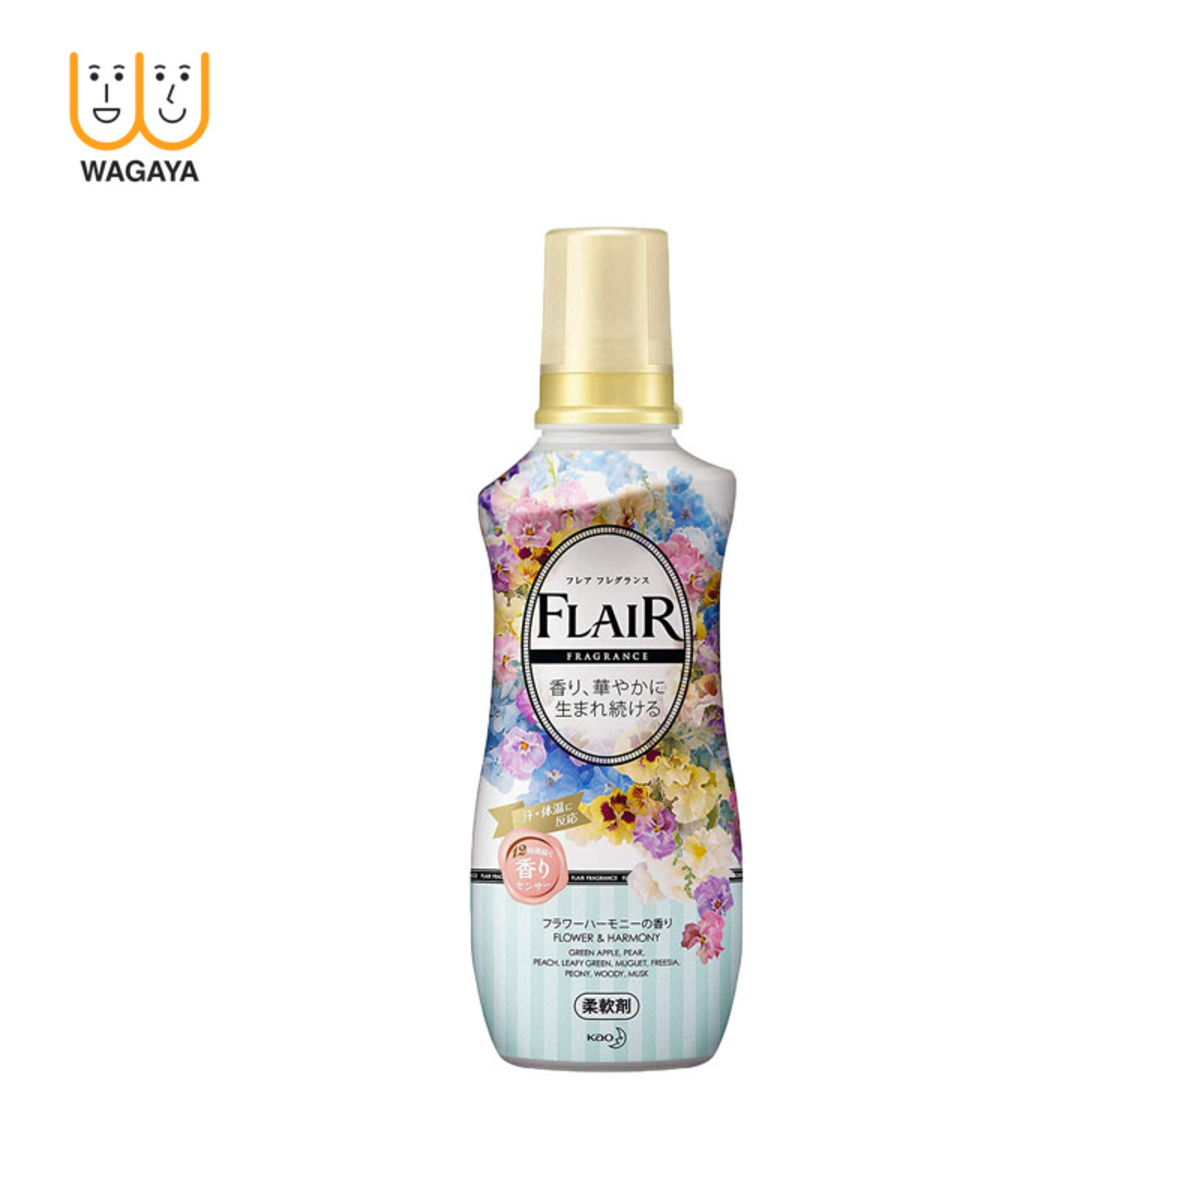 Flair Fragrance 12 Hours Fabric Softener 570ml (Green)